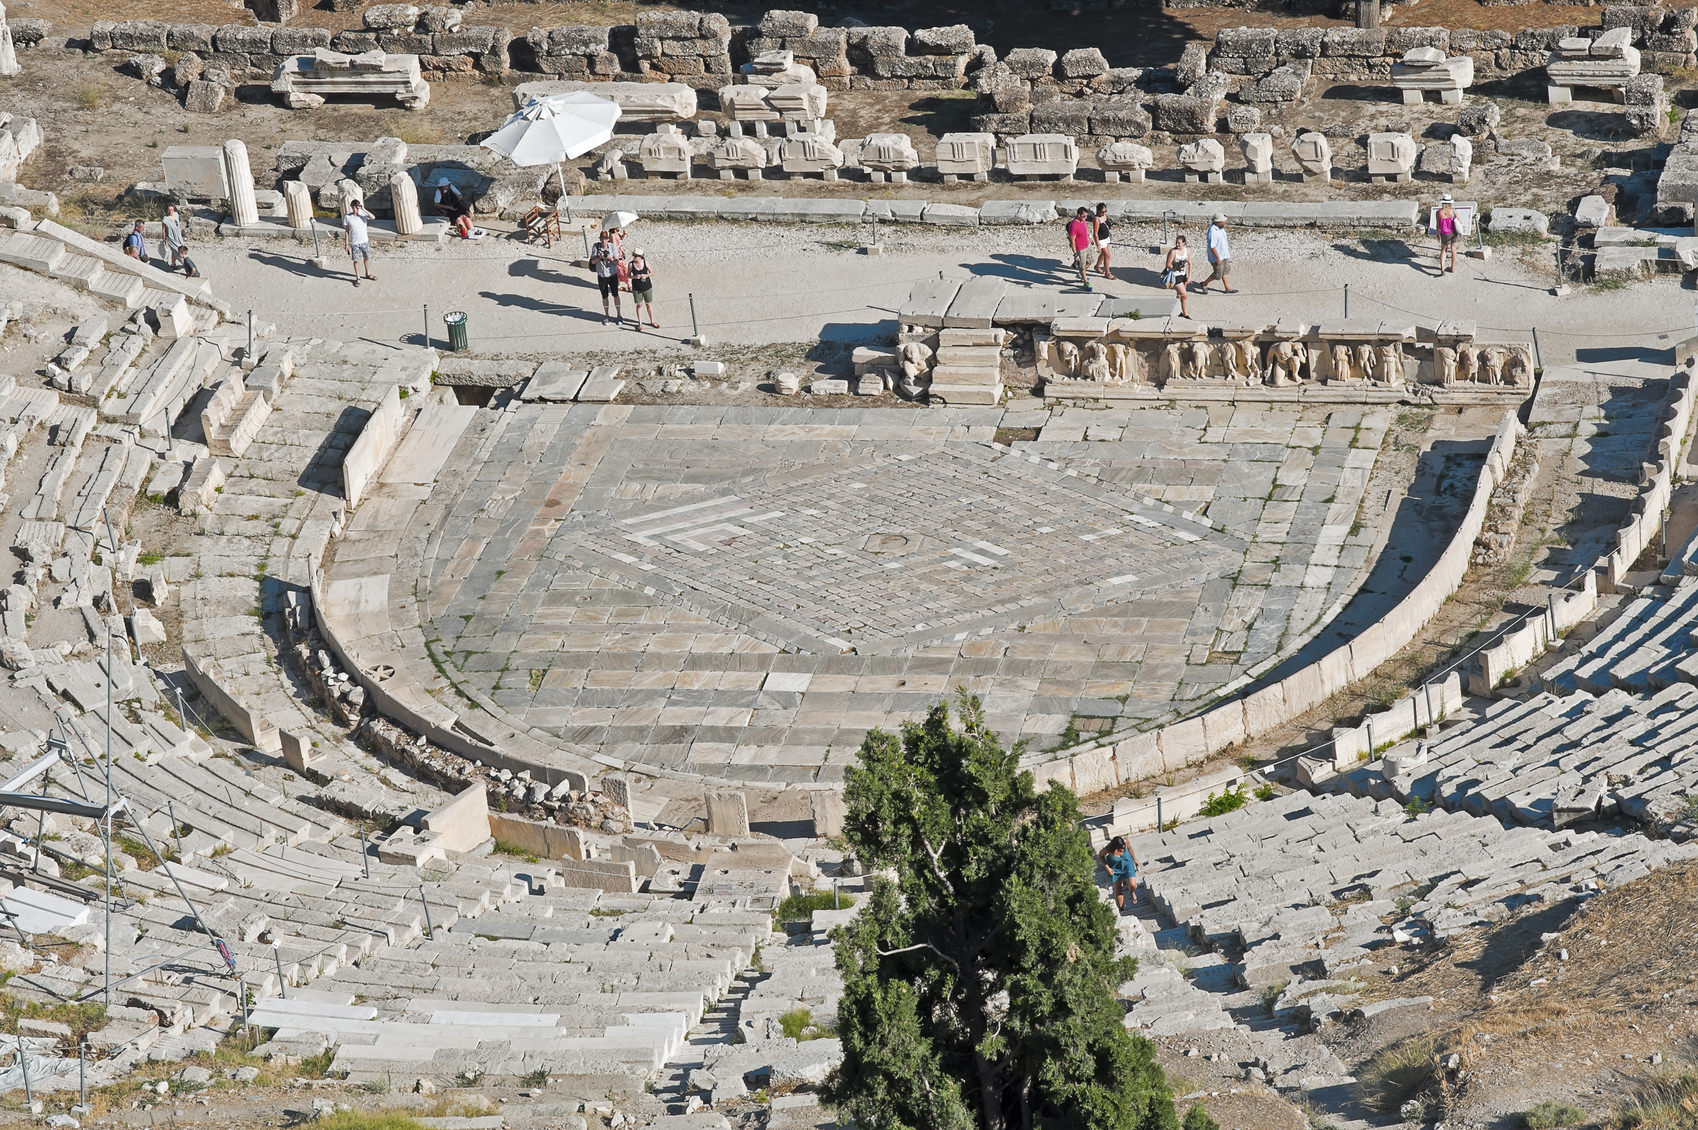 Athens, Greece - July 31, 2014: Remains of the Theater of Dionysus Eleuthereus on July 31, 2014 in Athens, Greece attracts tourists from all over the world.